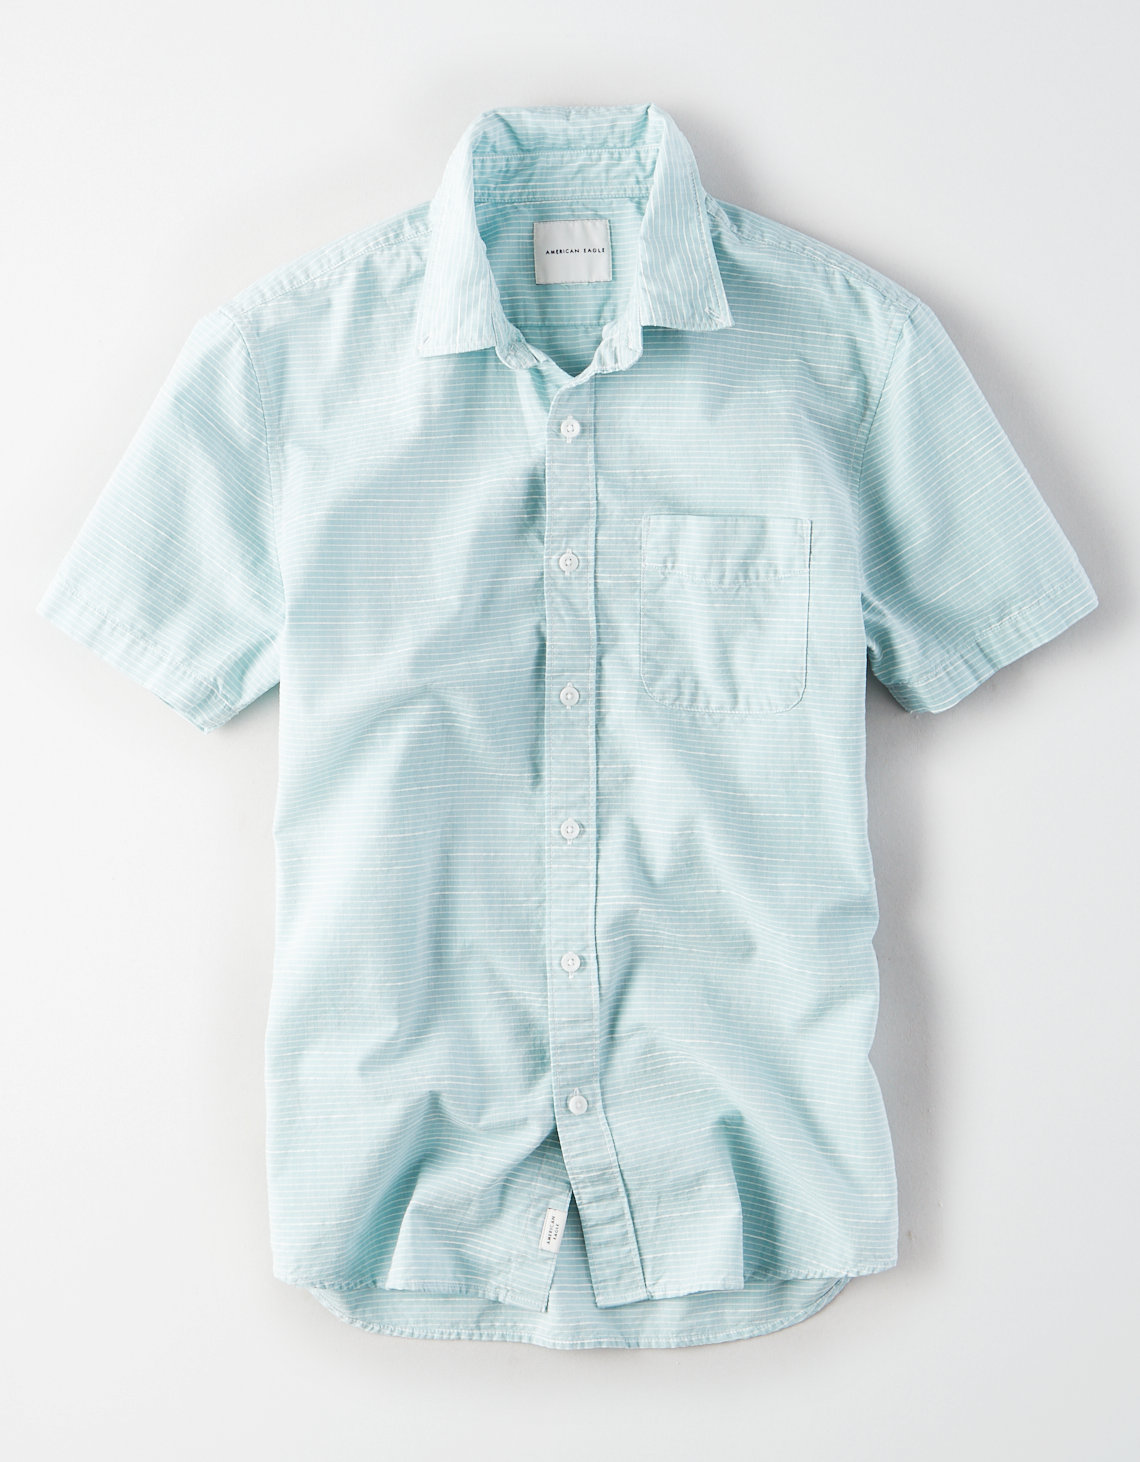 0db05a4e00 AE Short Sleeve Striped Button Down Shirt